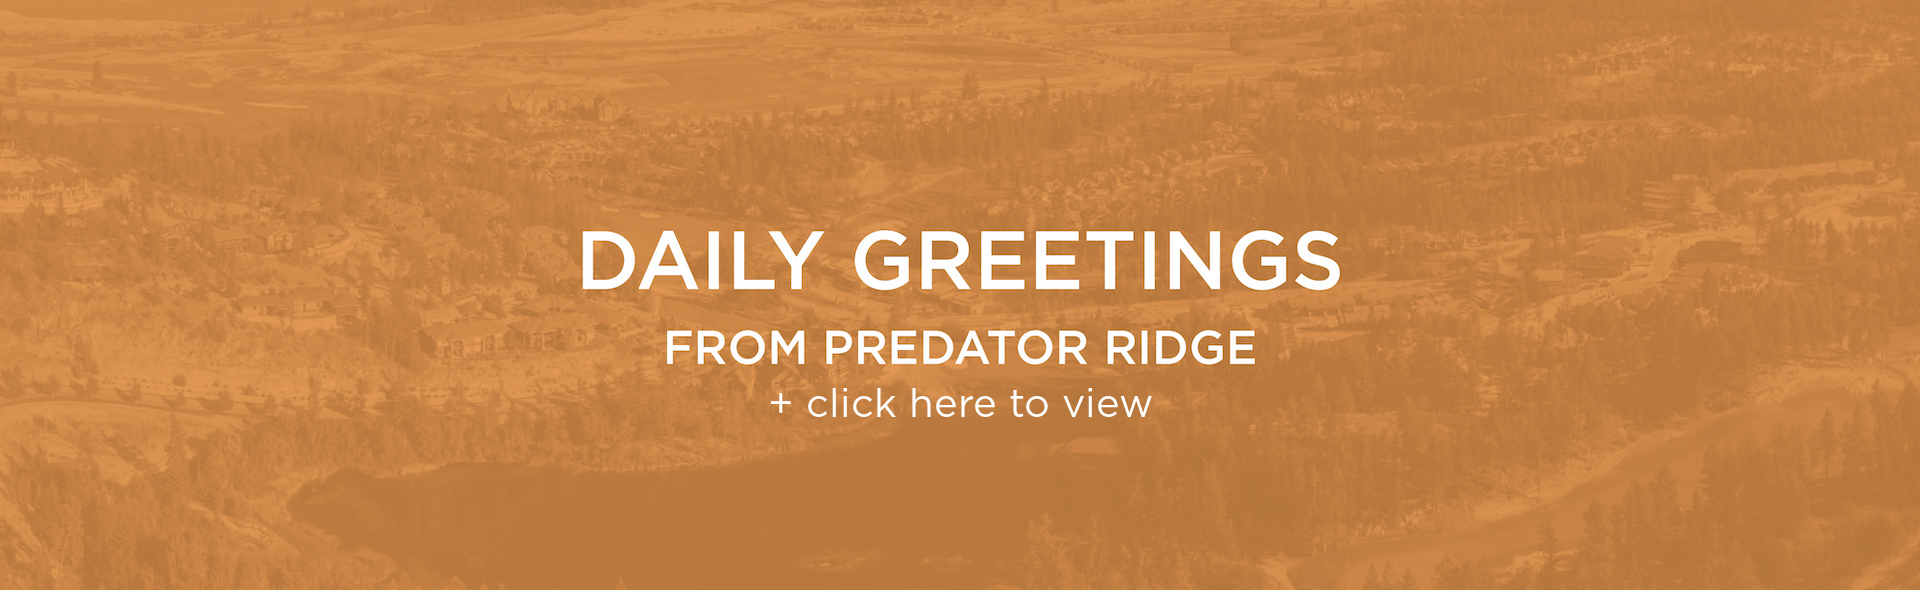 Daily Greetings from your Predator Ridge Team